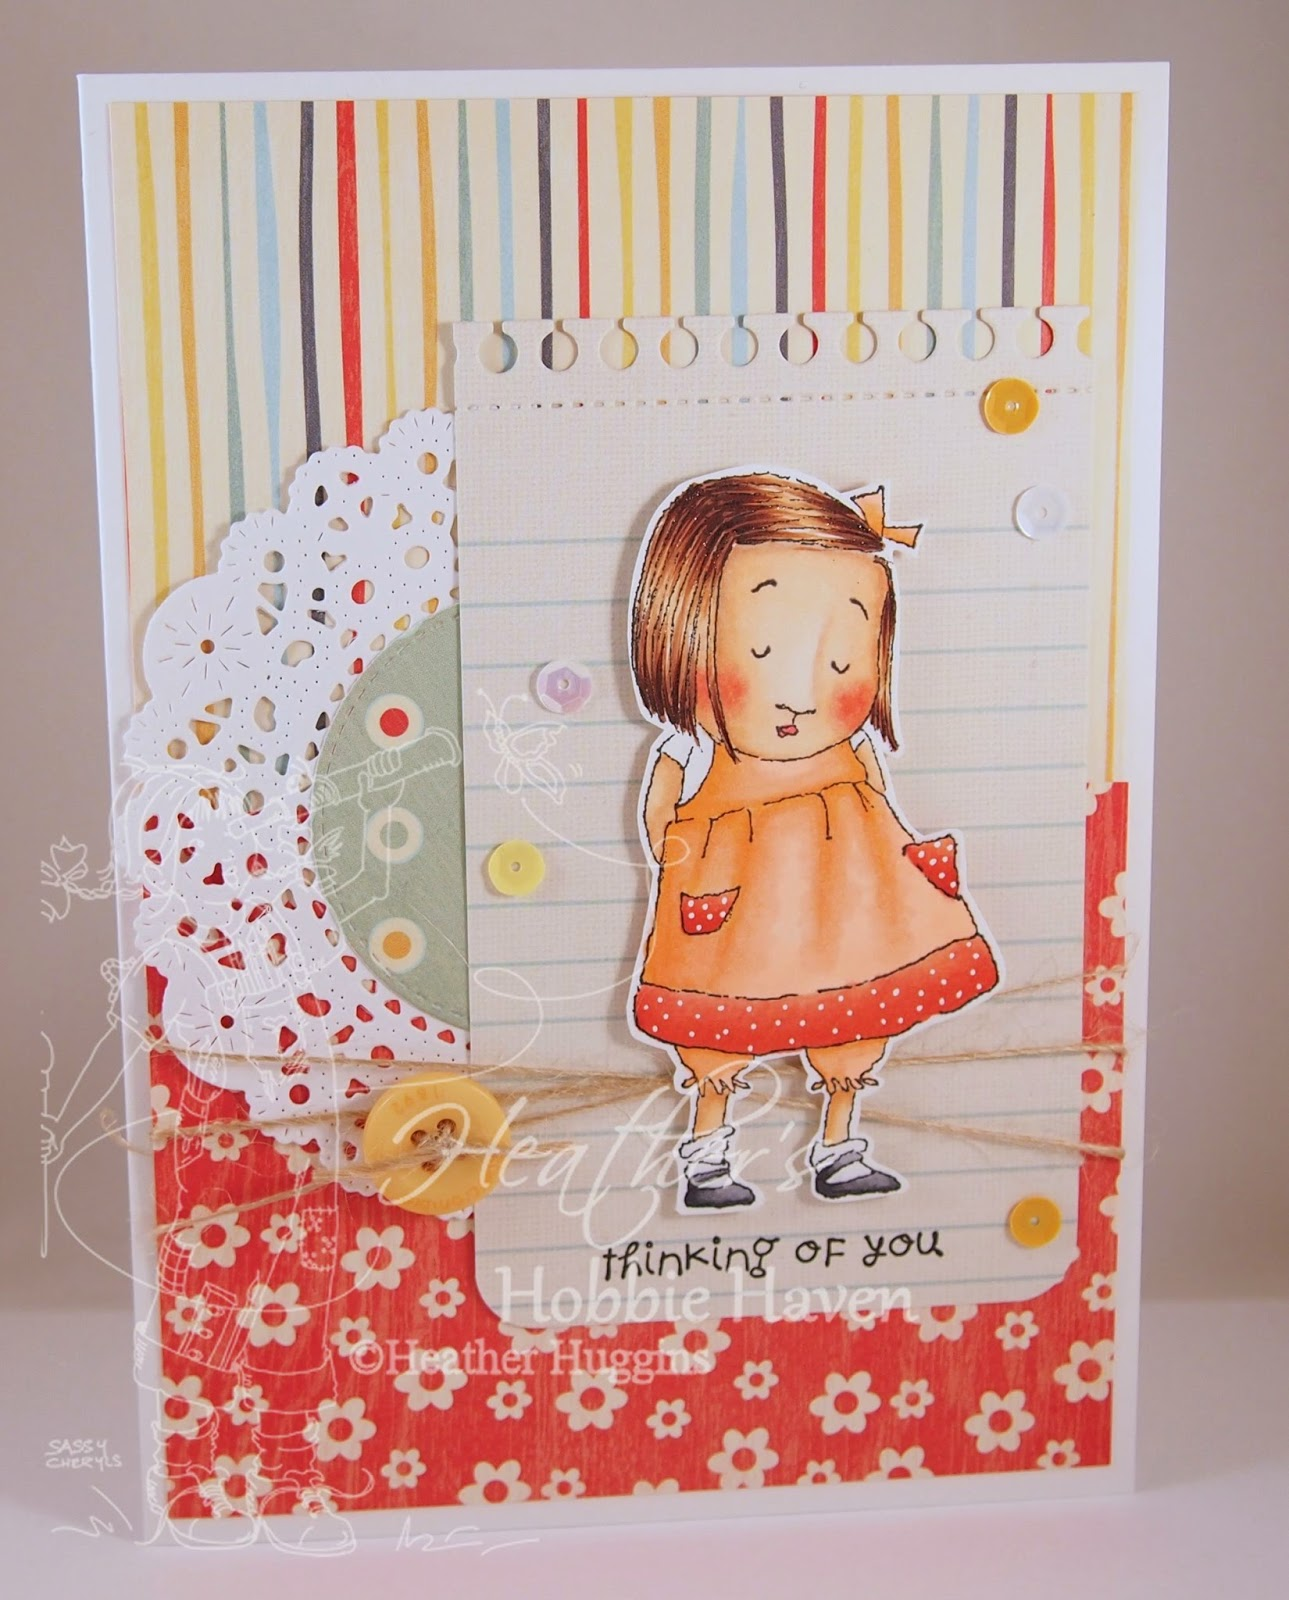 Heathers Hobbie Haven - Gracie Card Kit